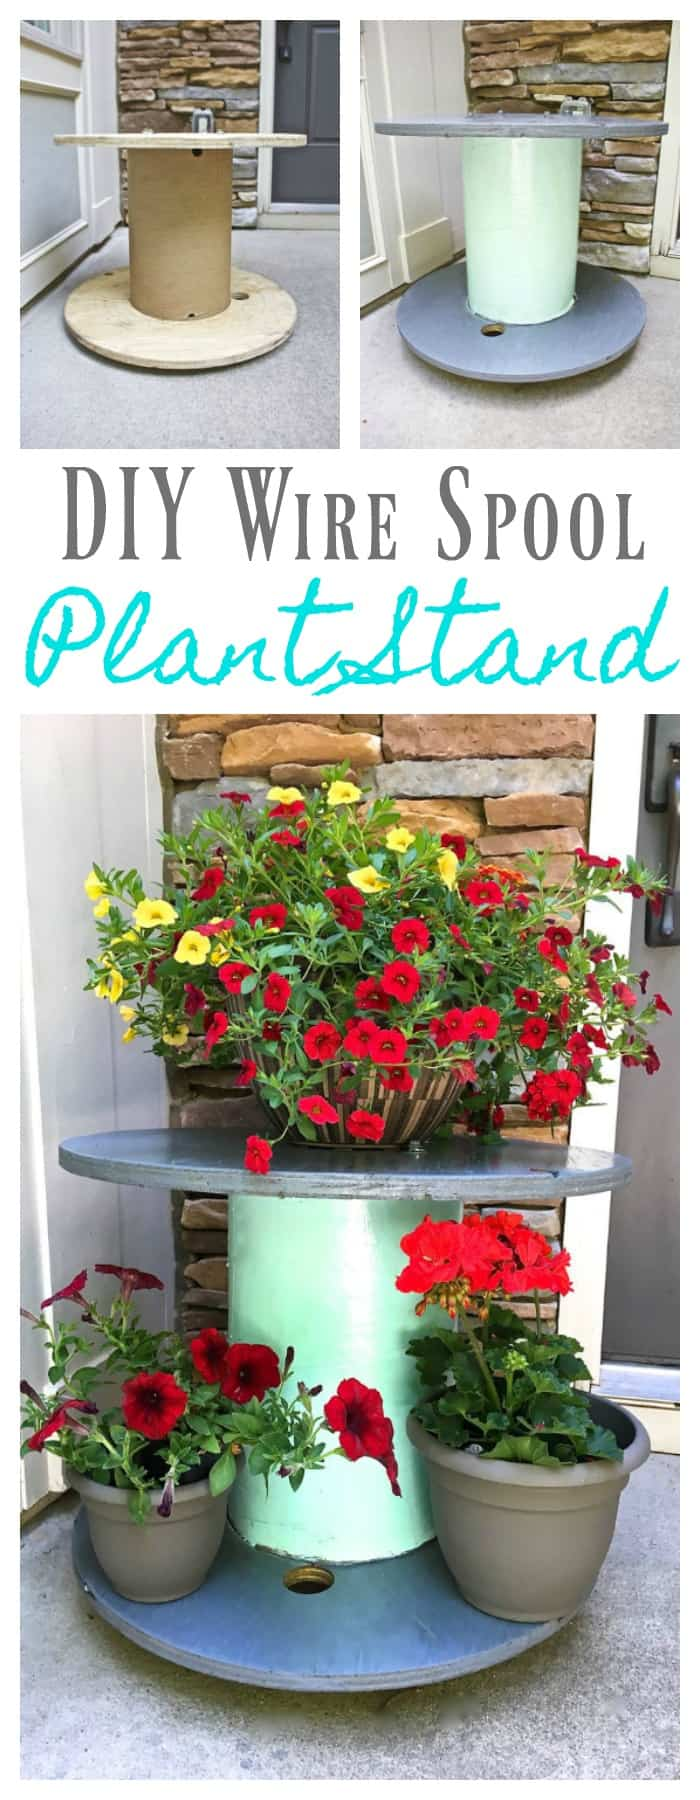 Diy wire spool planter